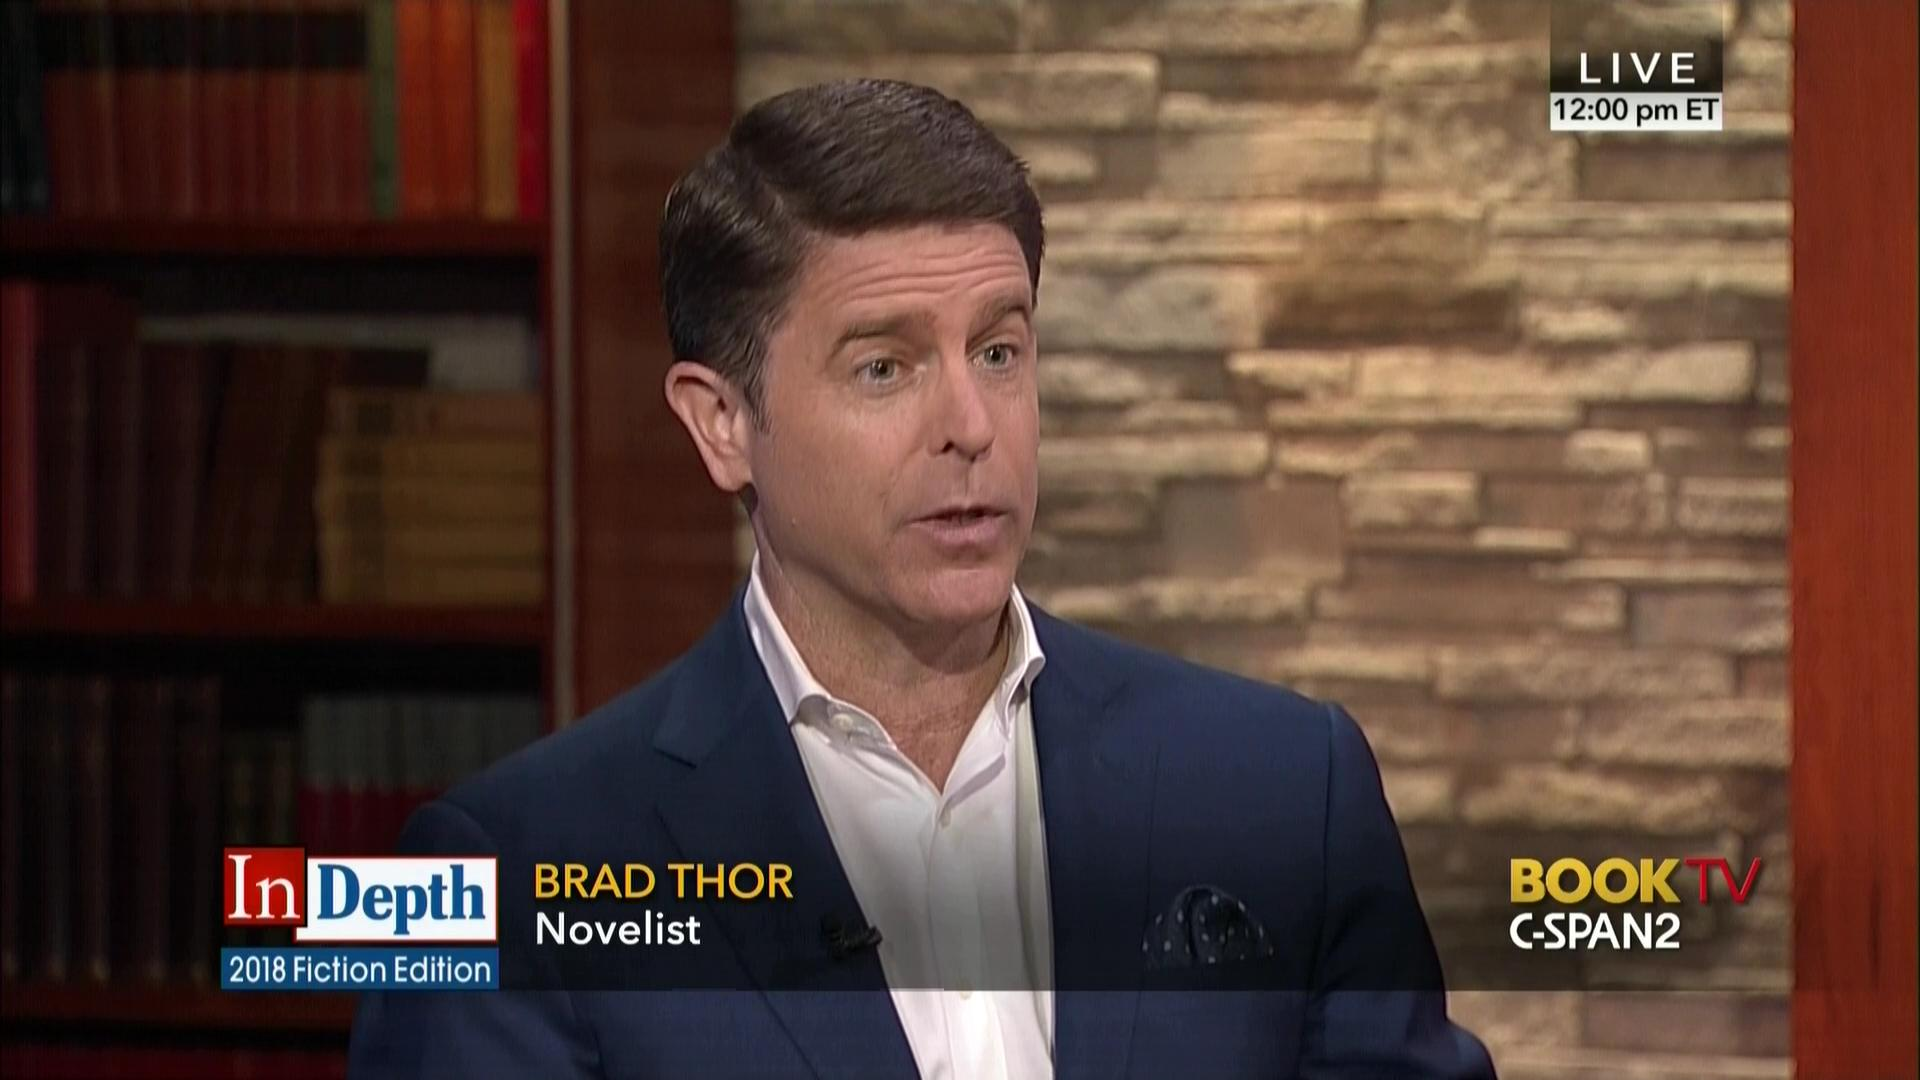 d1bc7f6a64 In Depth with Brad Thor | Video | C-SPAN.org